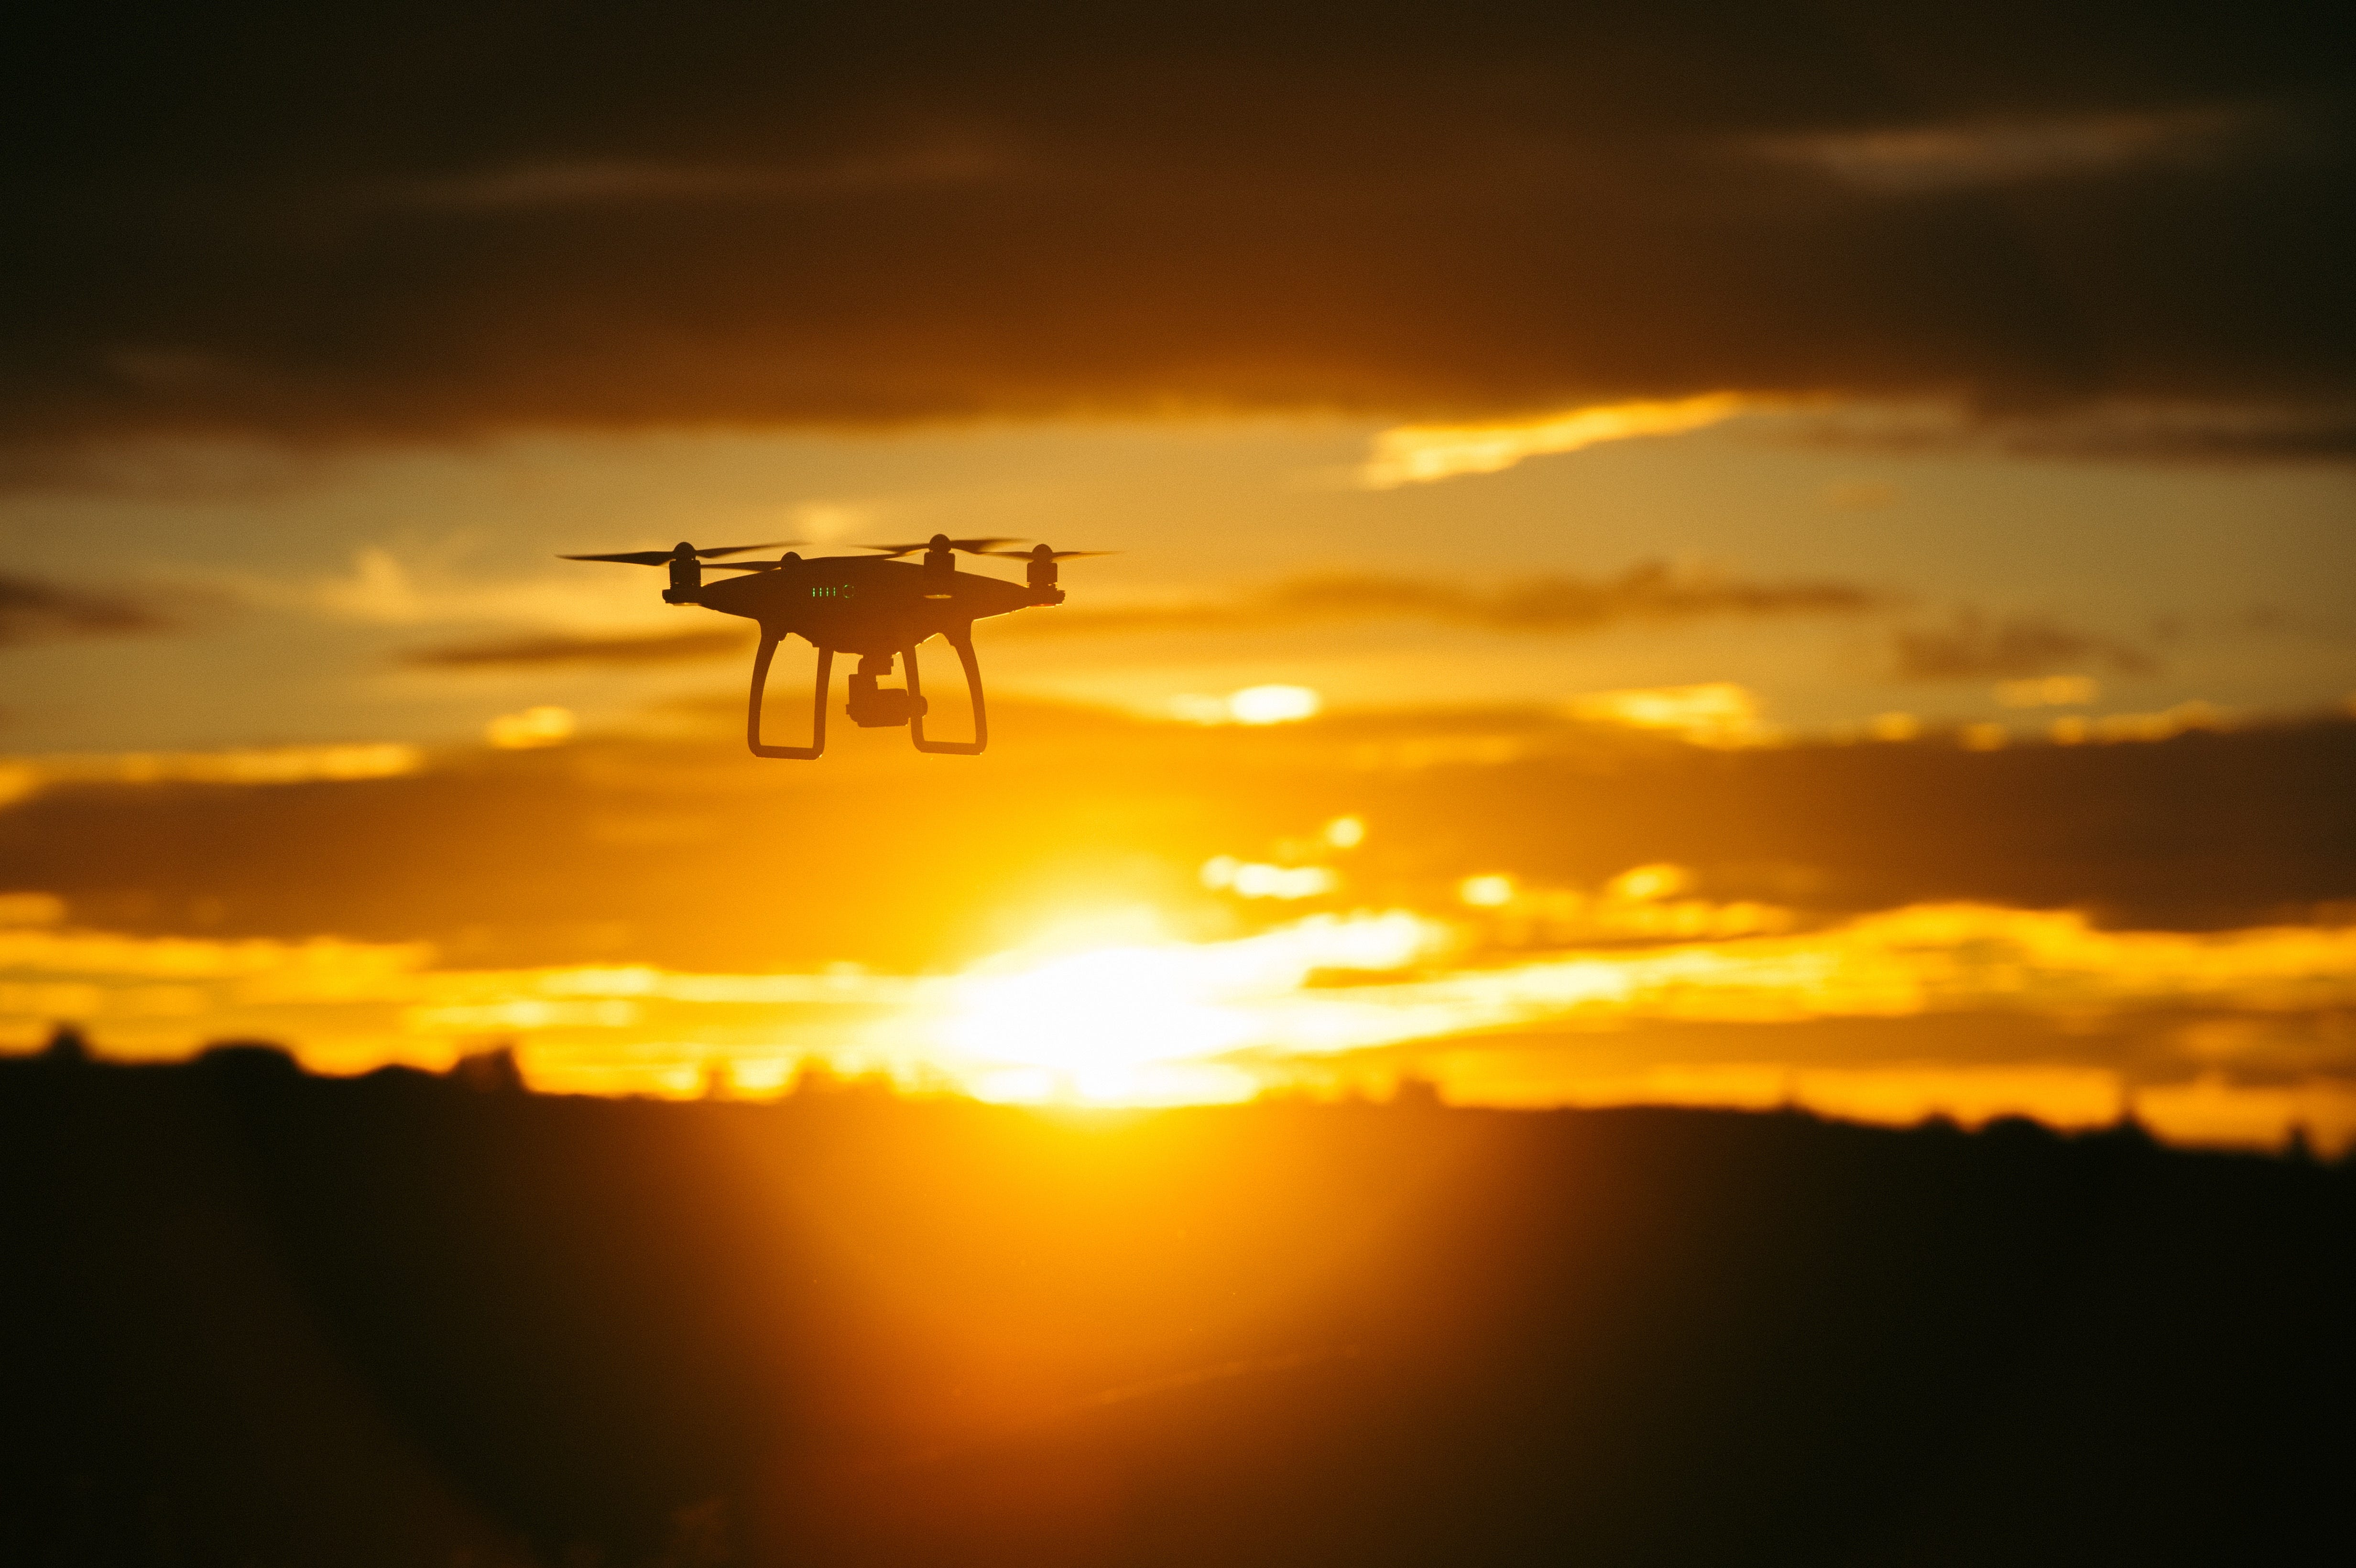 7 Tips for Getting Started With Drone Photography